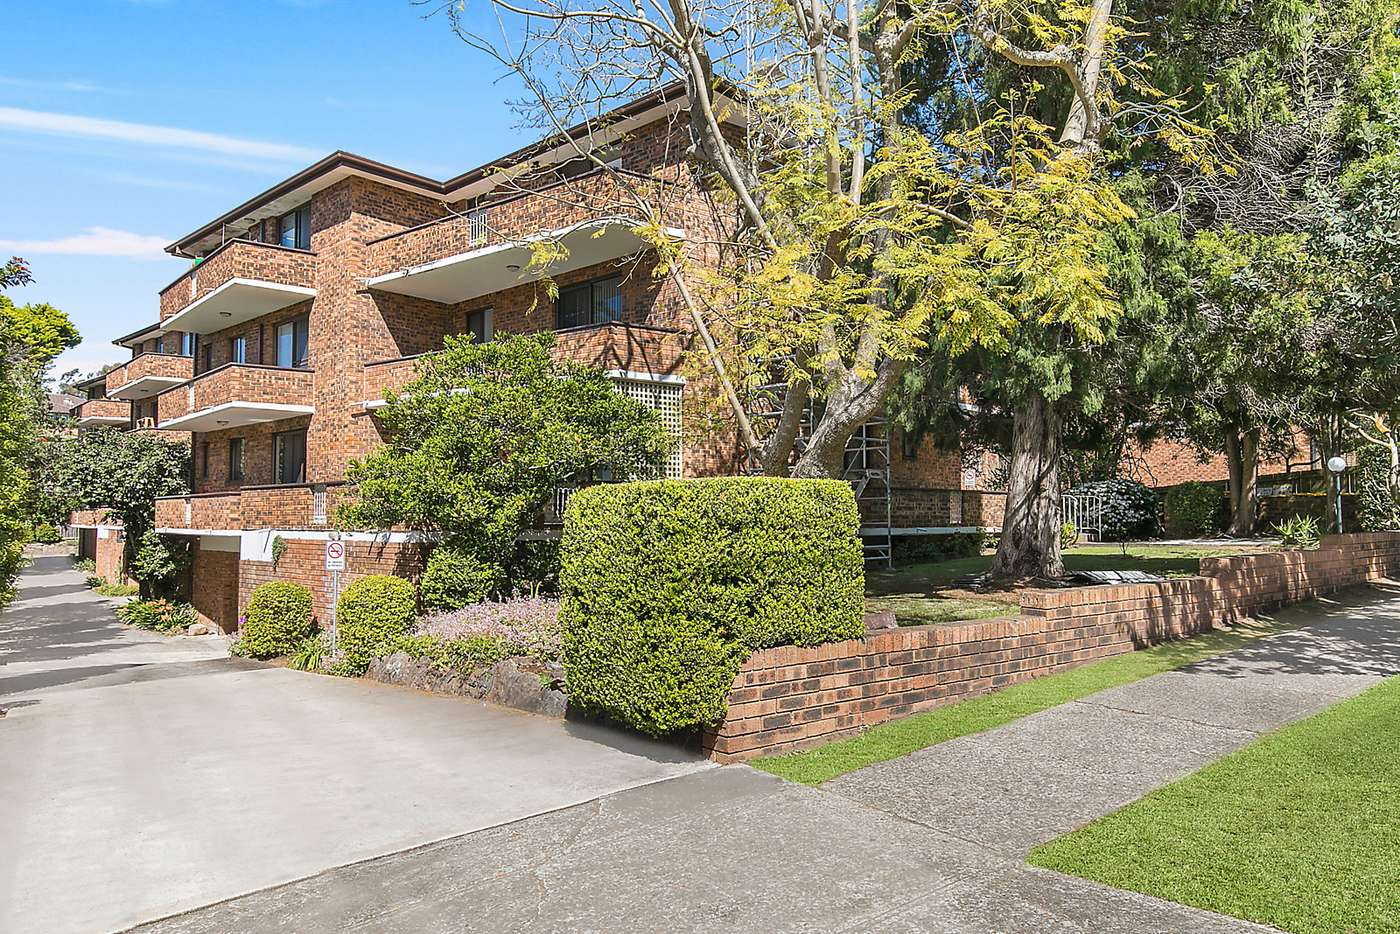 Main view of Homely apartment listing, 1/26-28 Burdett Street, Hornsby NSW 2077